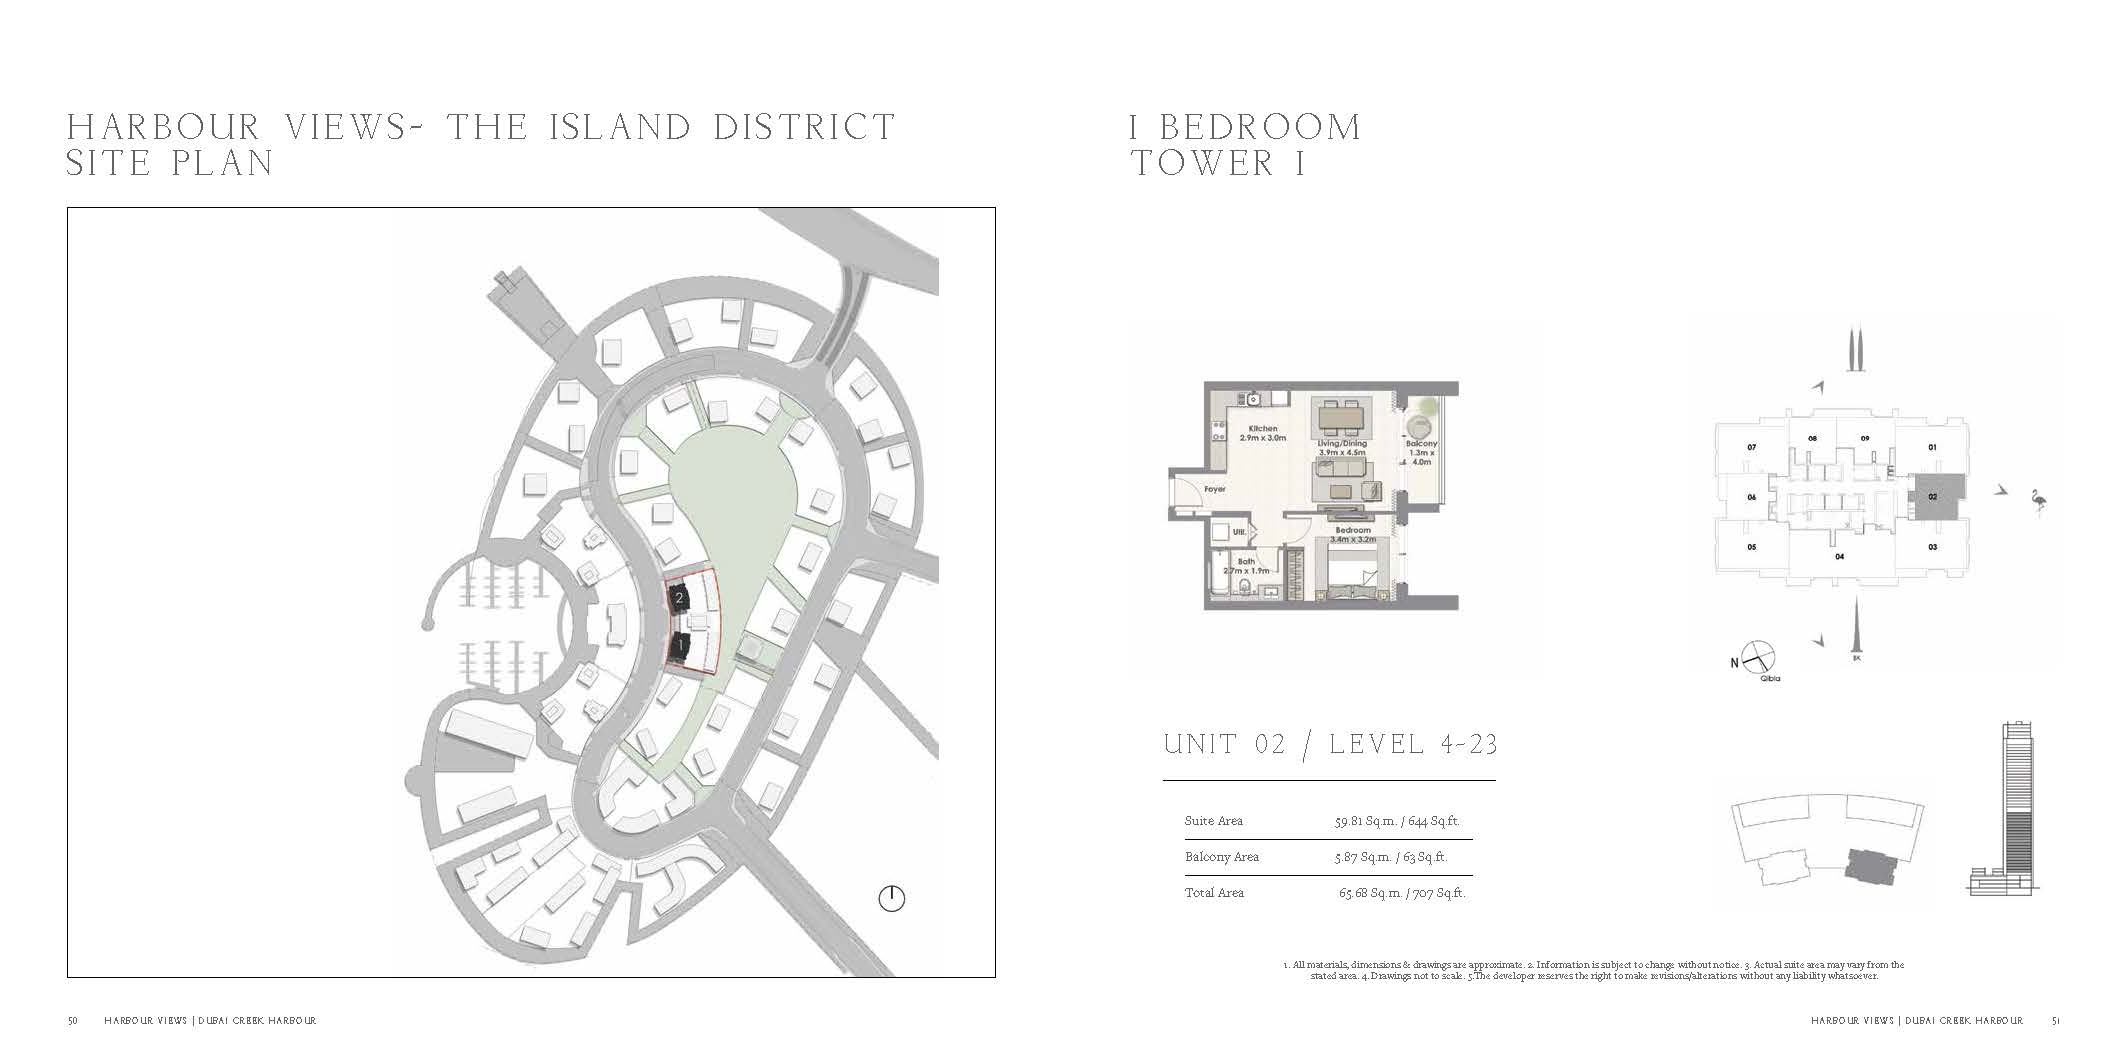 HarbourViewsfloorplans Page 03